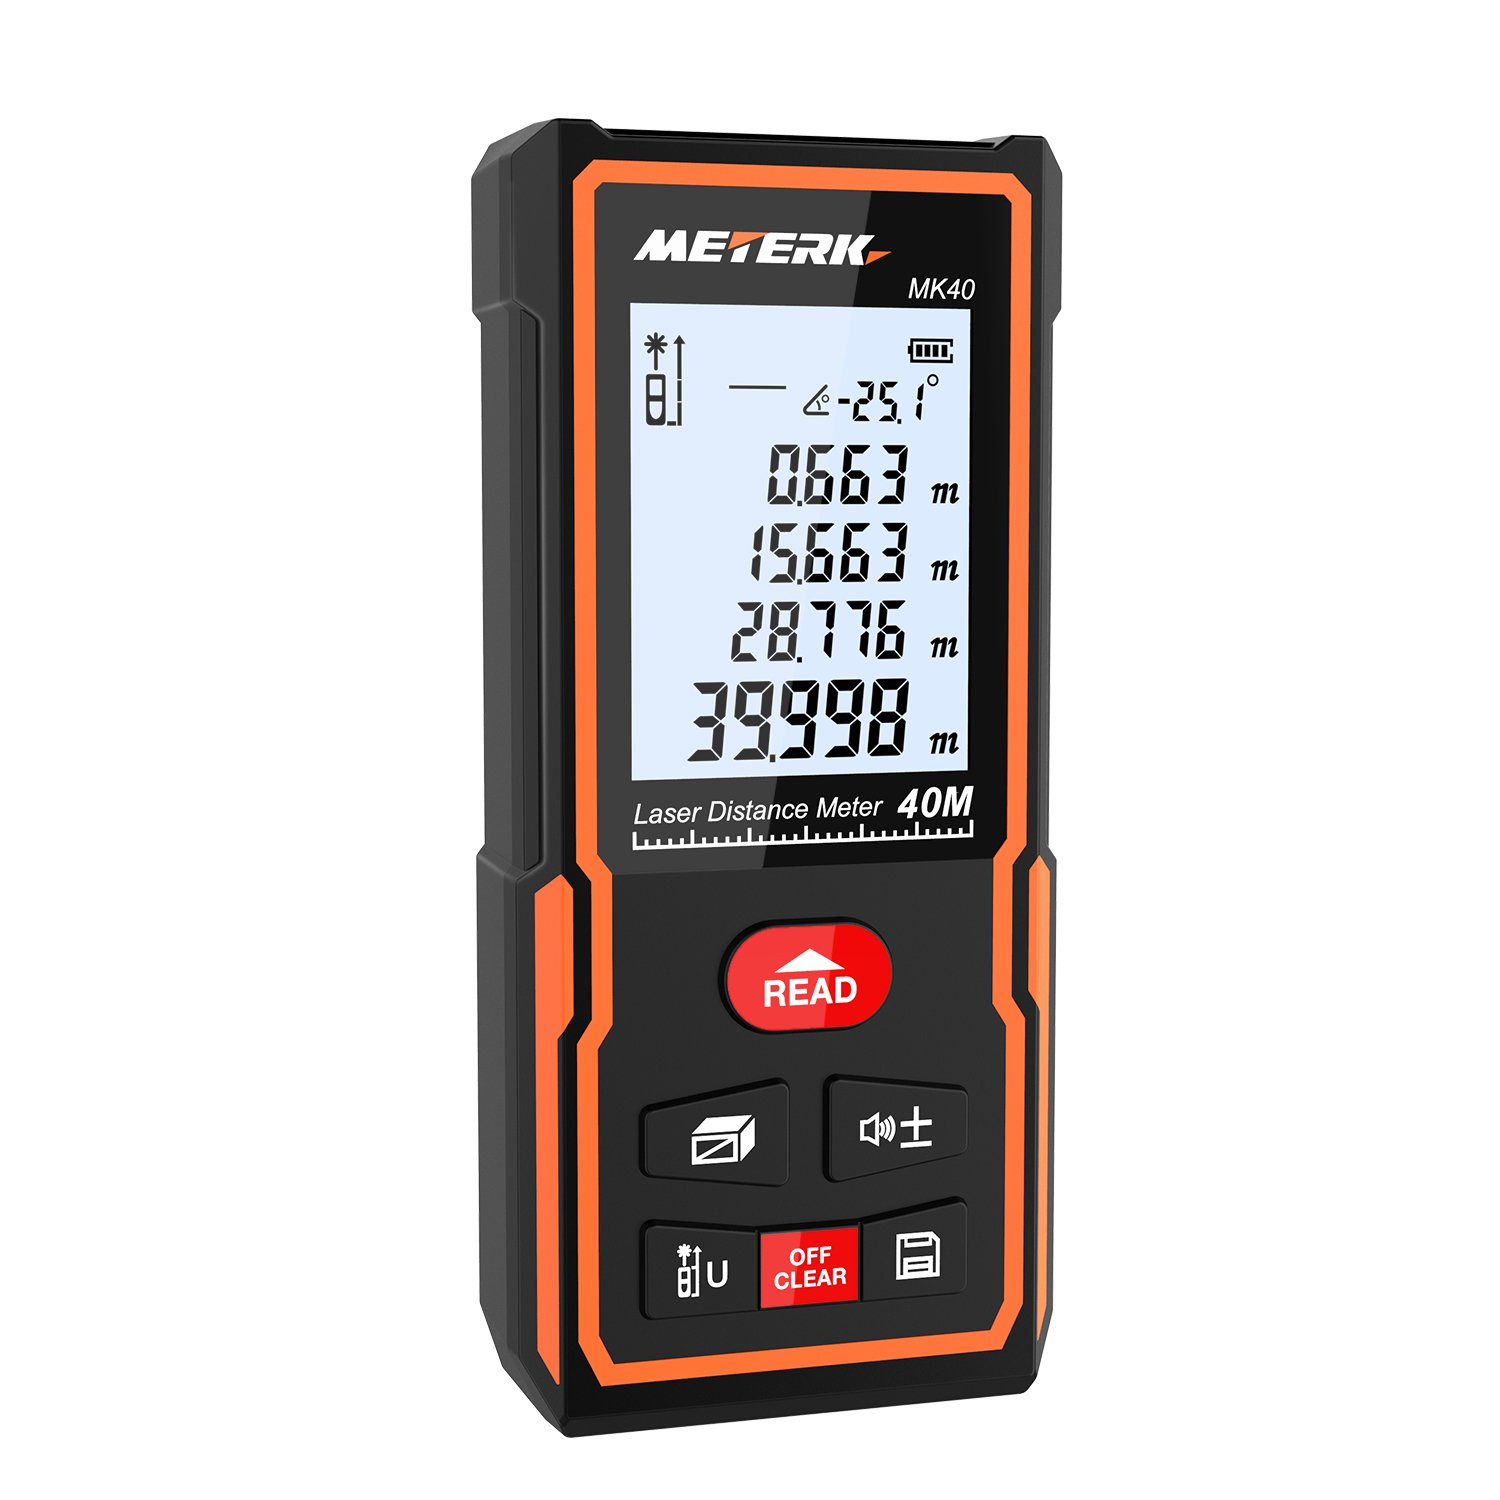 Laser Distance Meter, Meterk M/In/Ft Laser Measure Area Volume Measure with LCD Display Backlight, Electronic Angle (40m), High-precision Rangefinder, Data Storage Memory Function